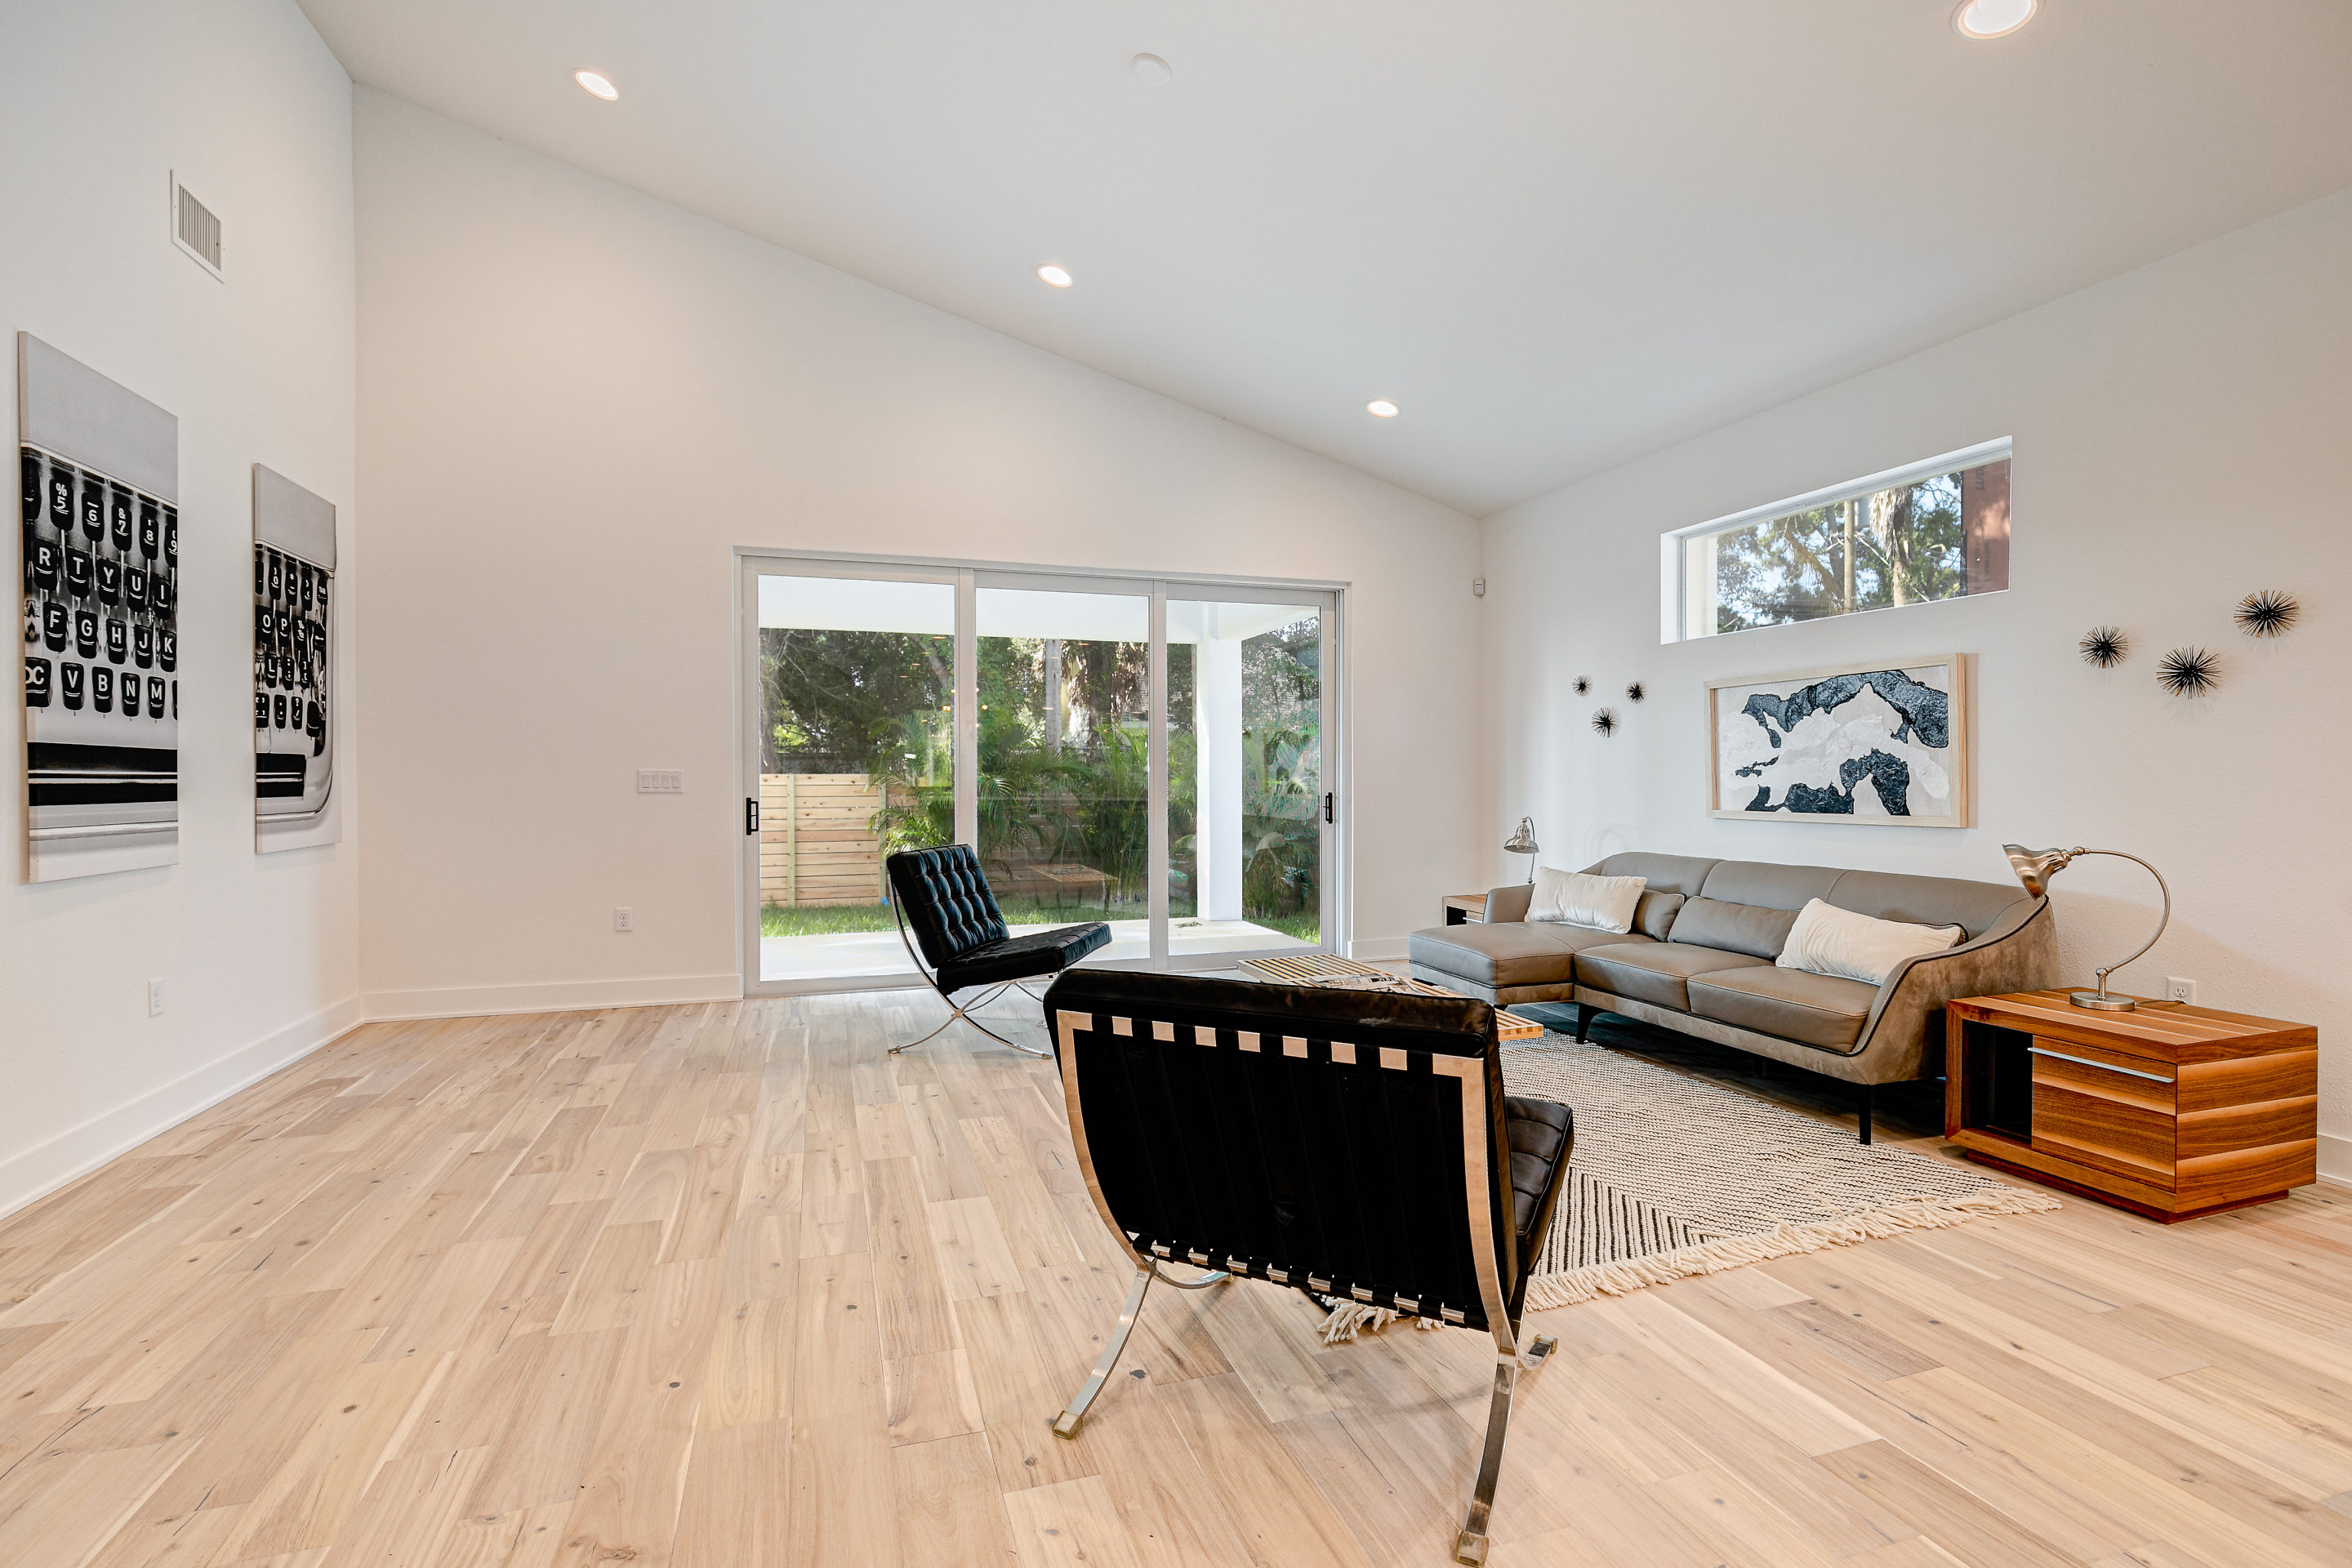 Beautiful Wood Flooring Throughout the living area